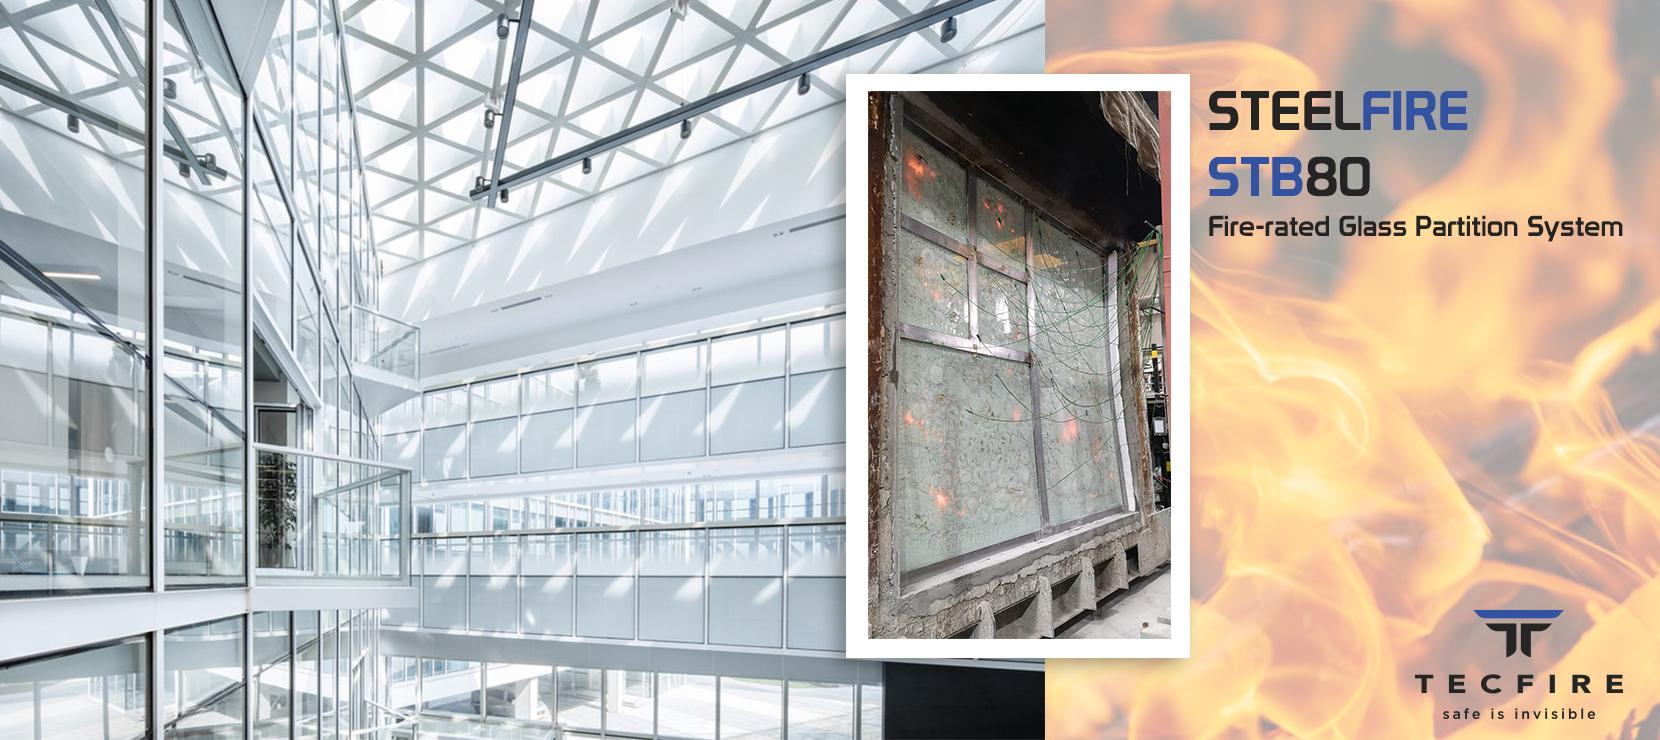 R&D:The New EI120 Glass System